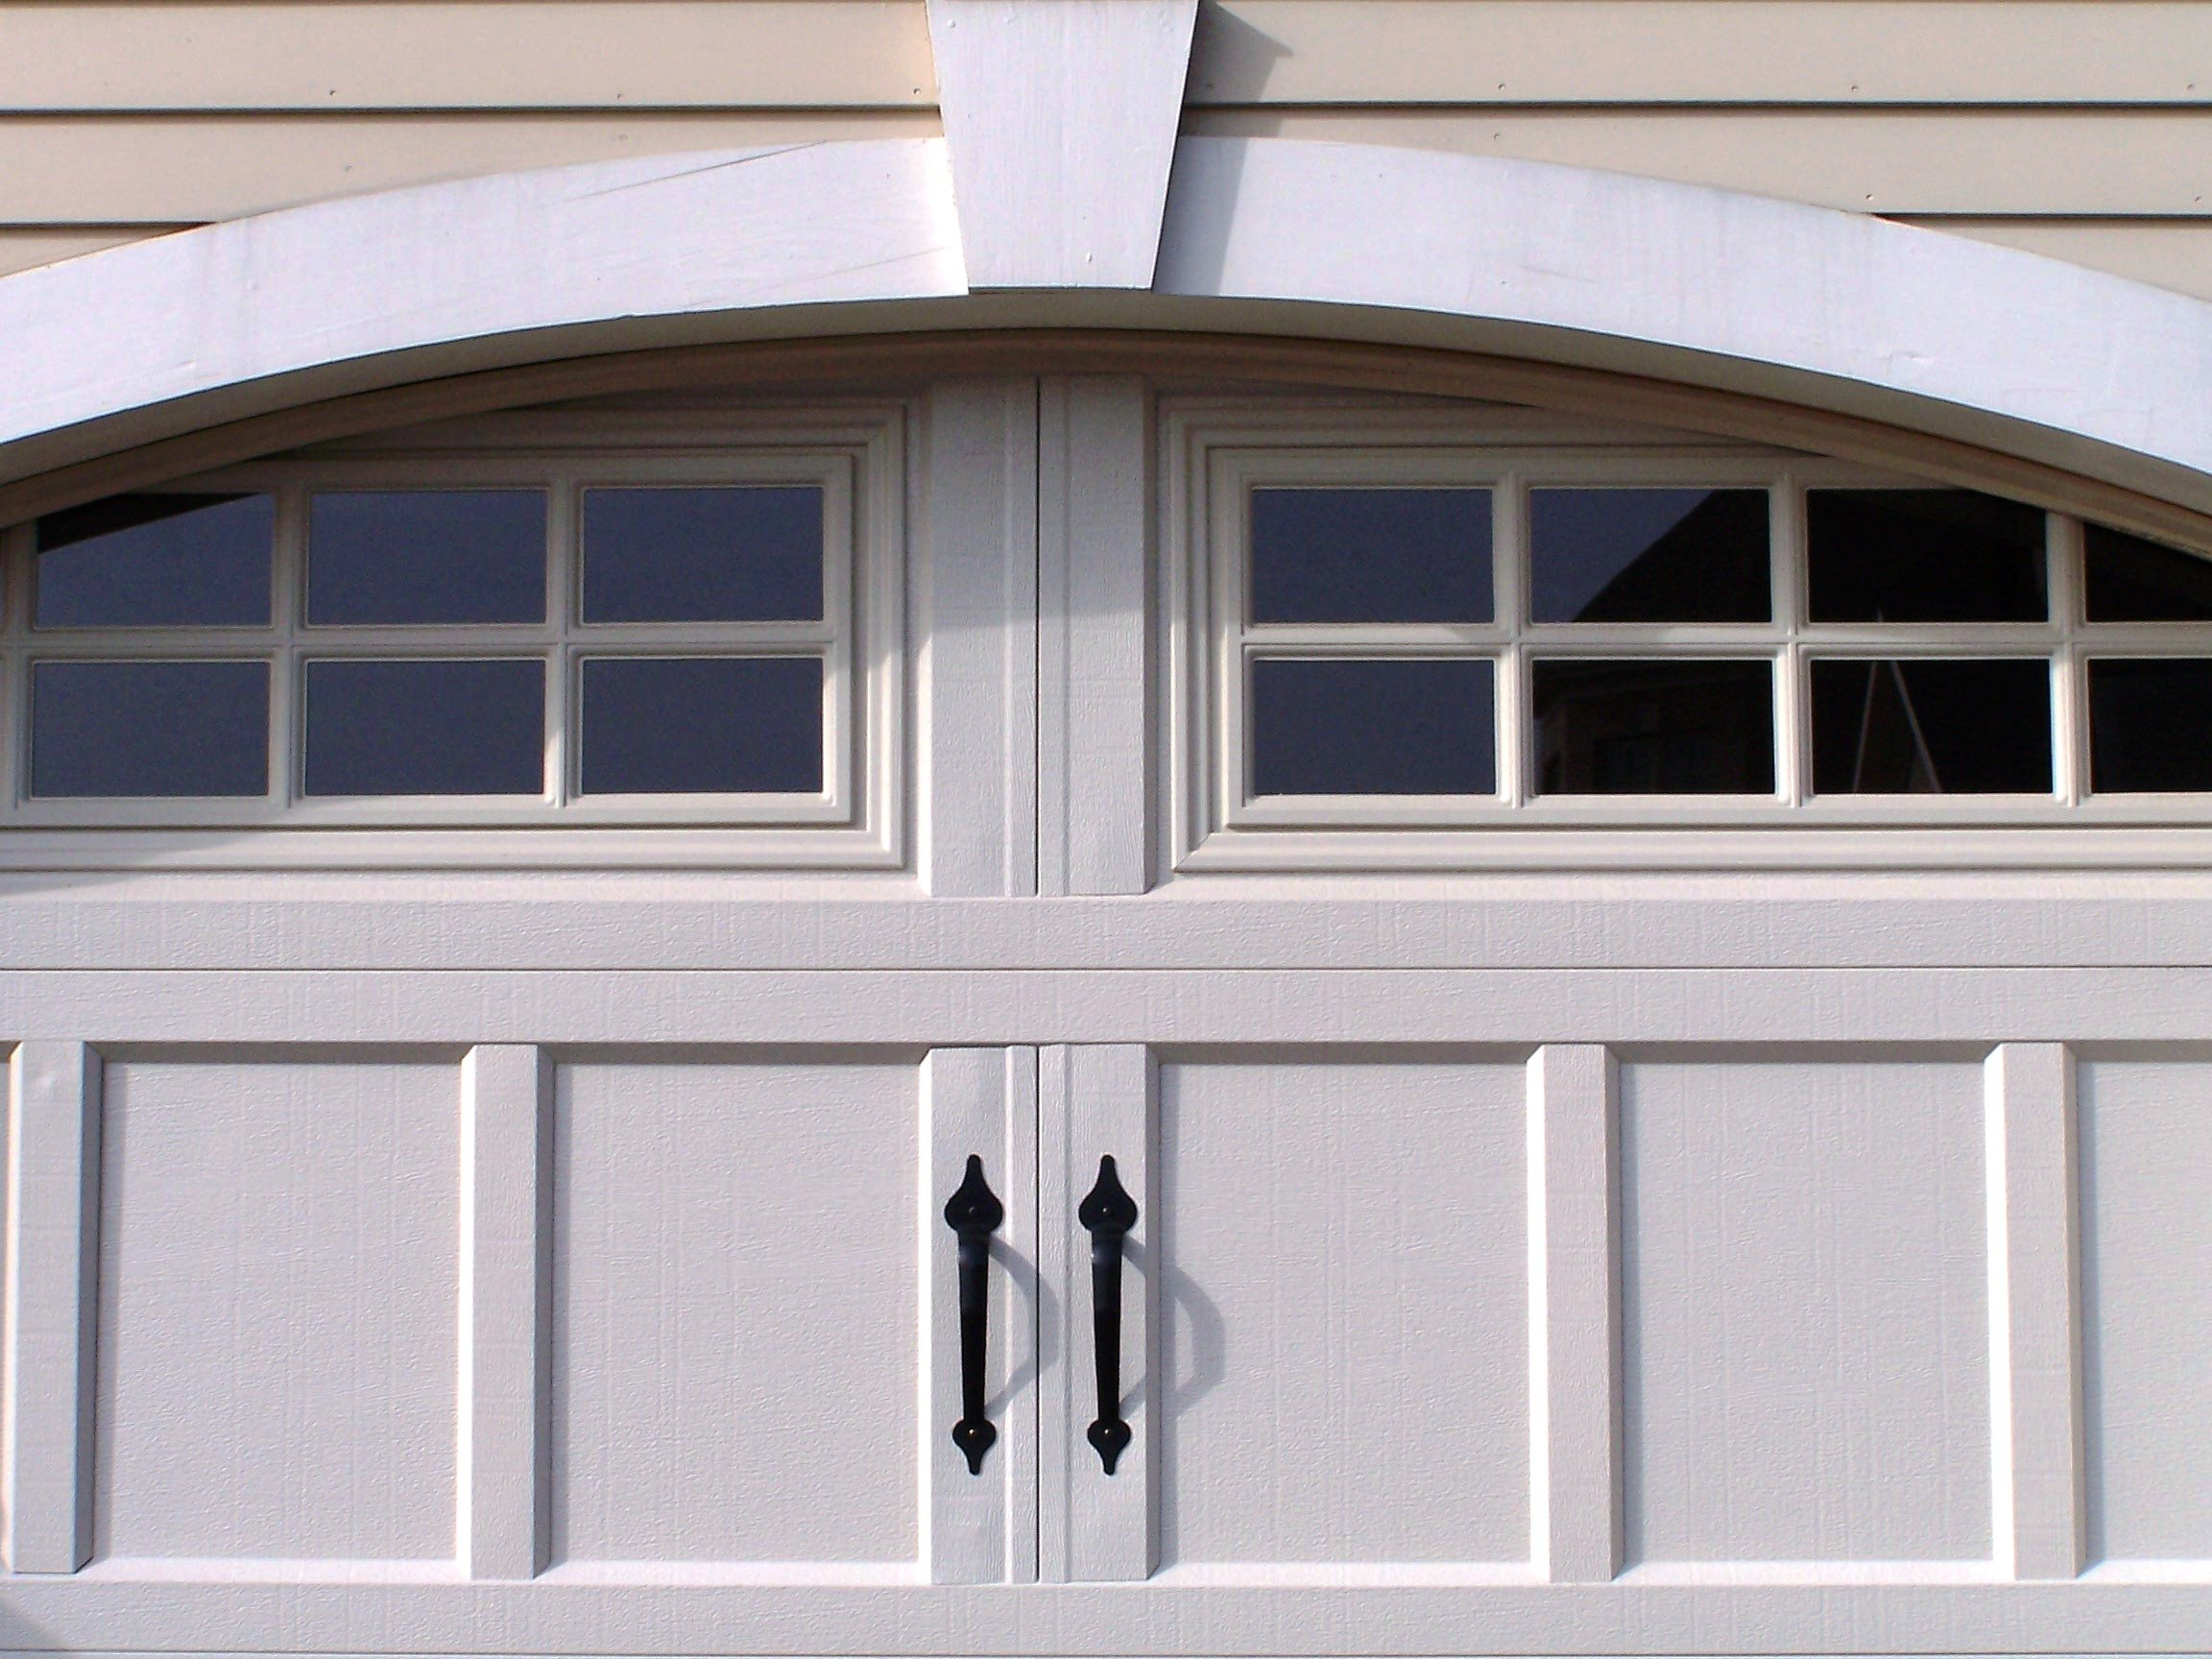 Doors To Garage: Douglas Garage Door Center Inc